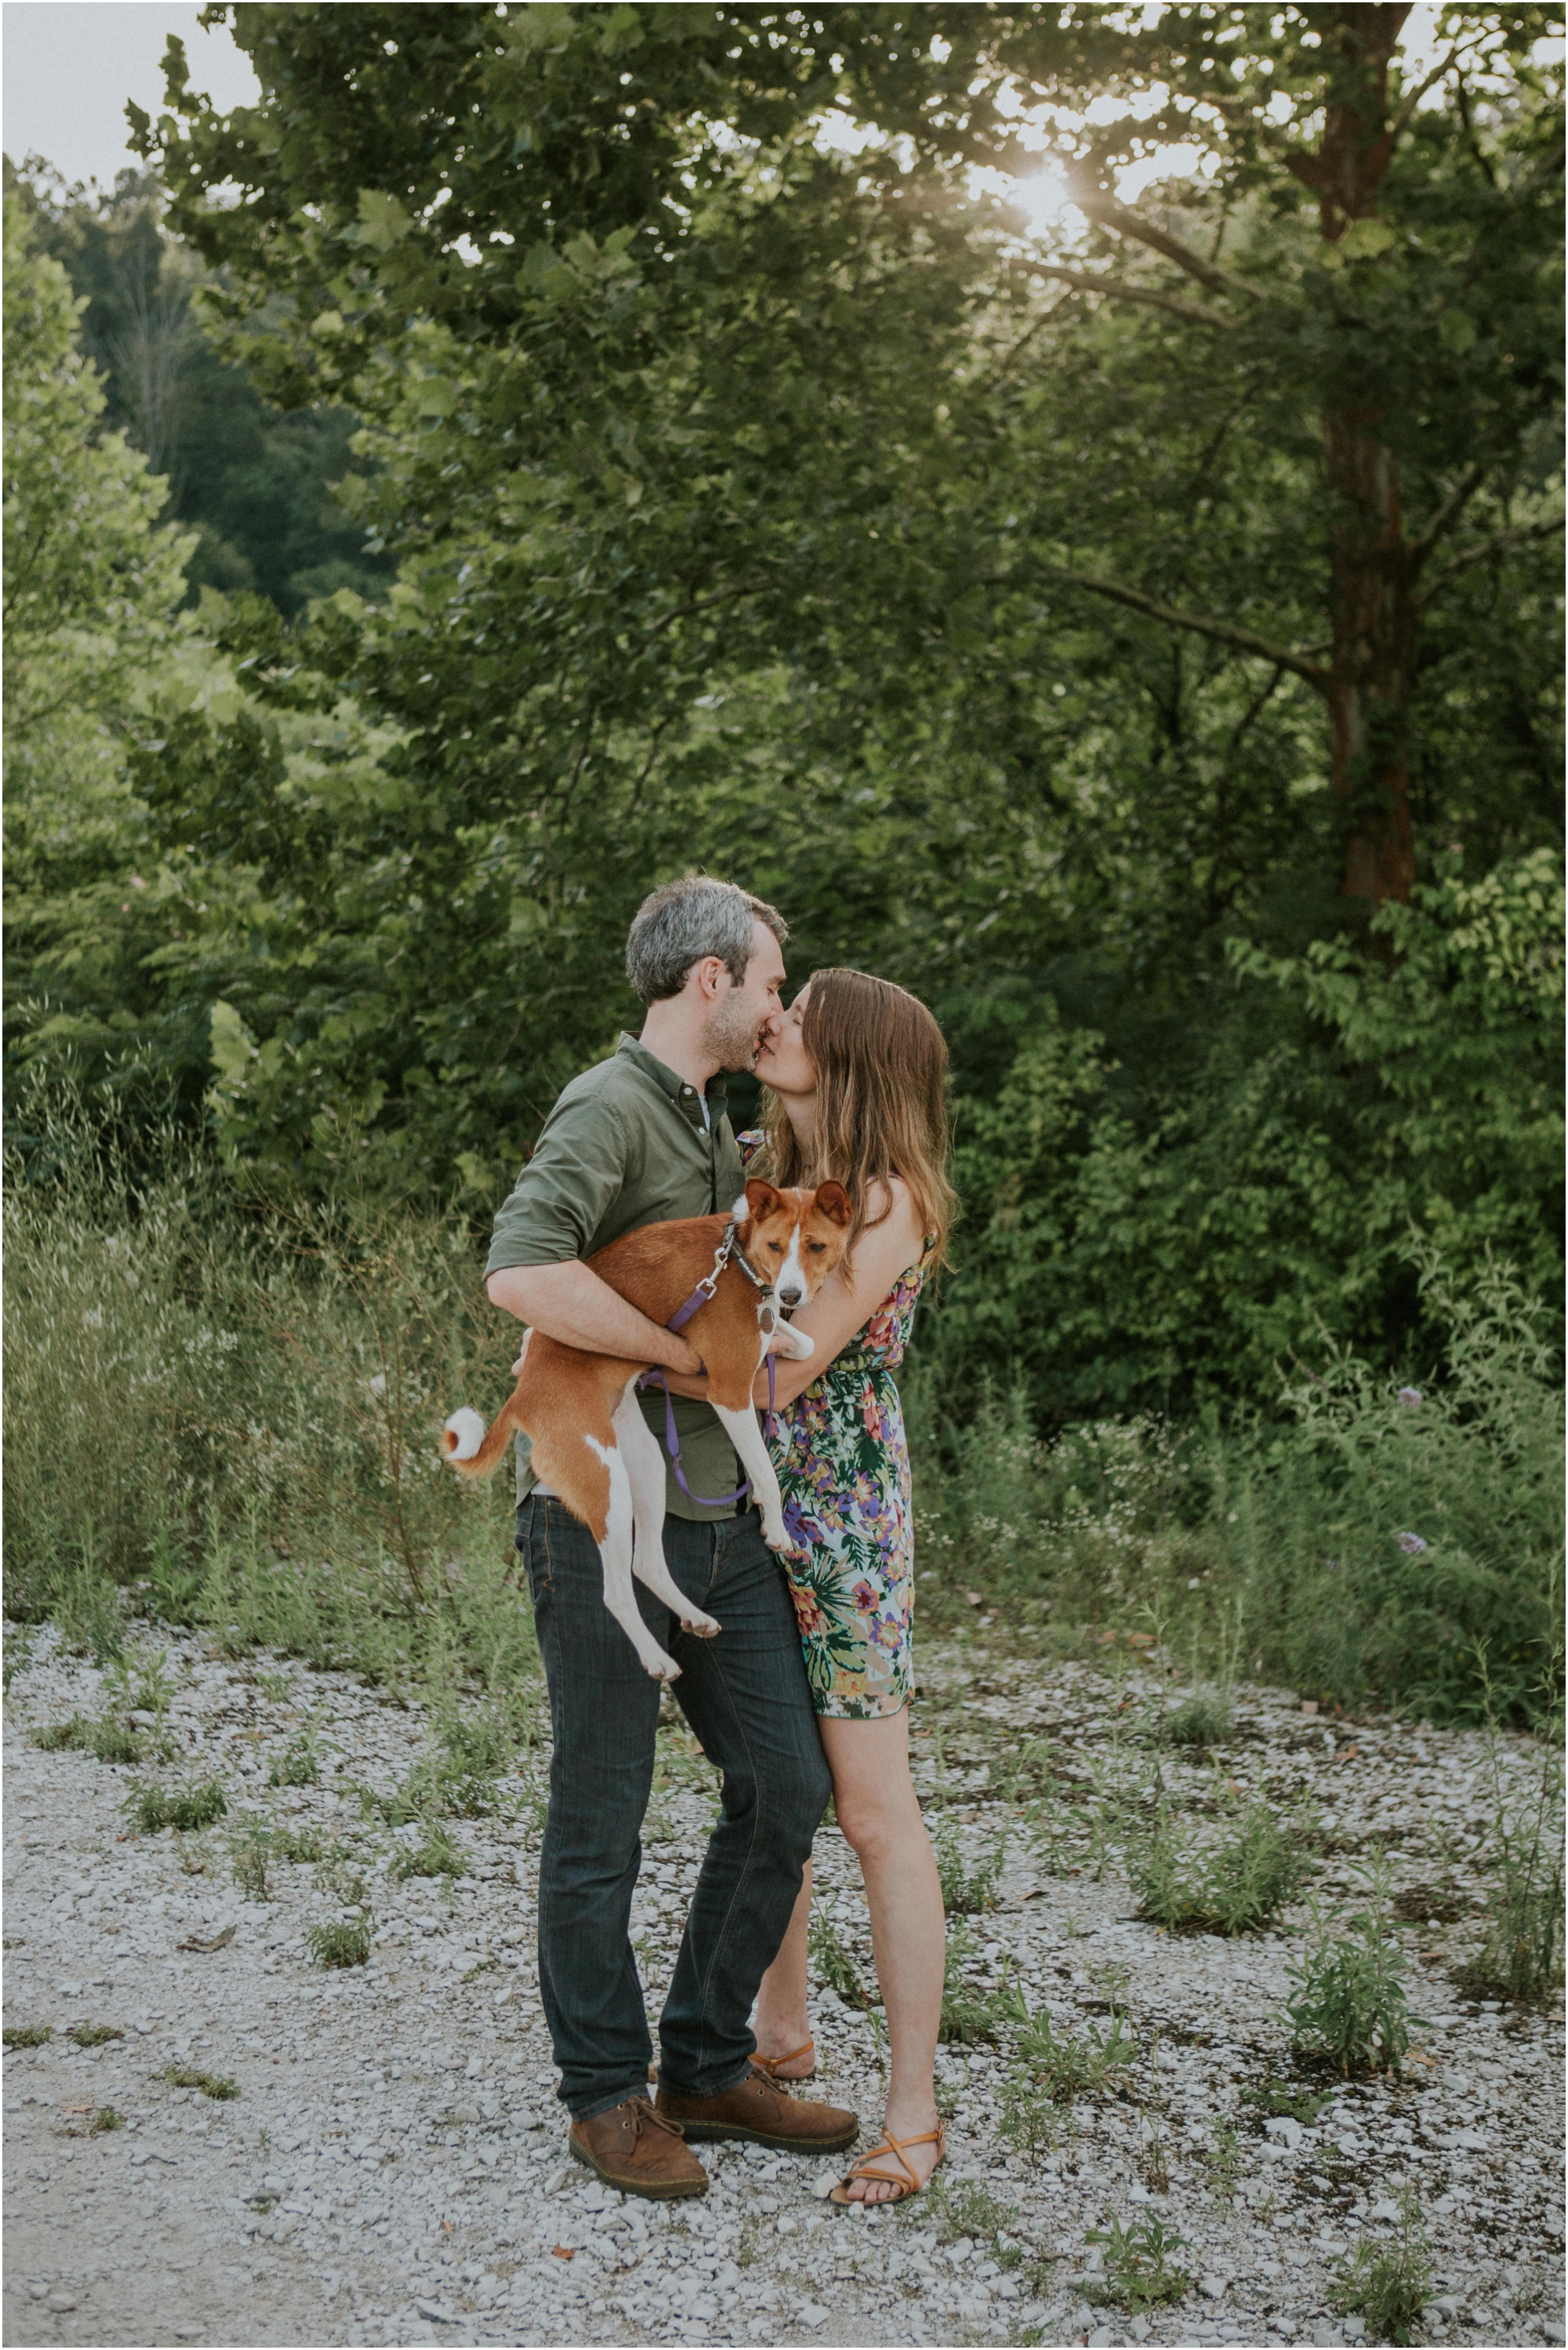 meads-quarry-ijams-nature-center-knoxville-tennessee-engagement-session-summer-northeast-tn-adventurous-outdoors-lake-katy-sergent_0028.jpg